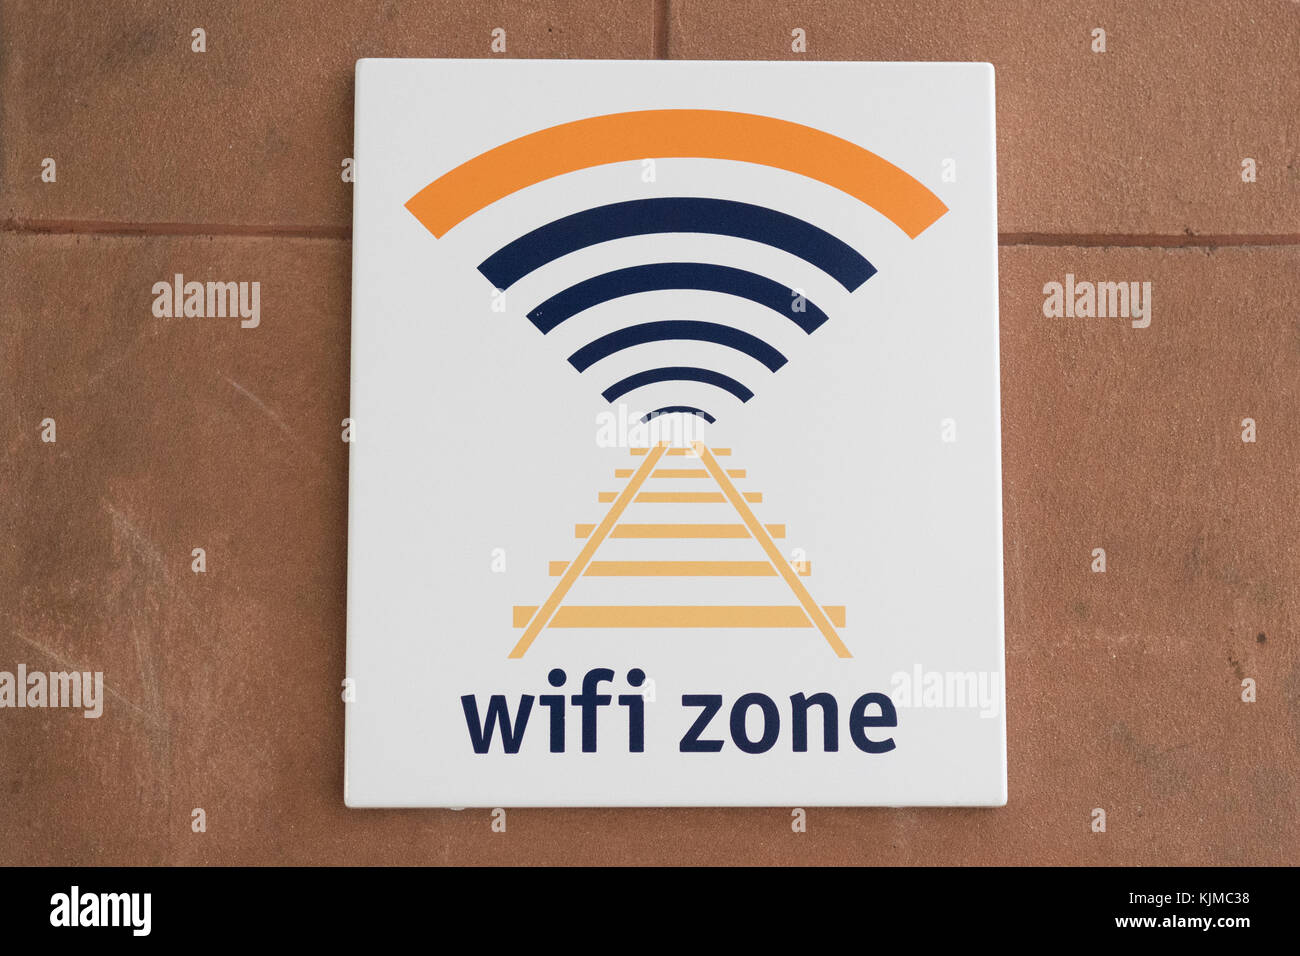 Scotrail zone wifi logo et inscription Photo Stock